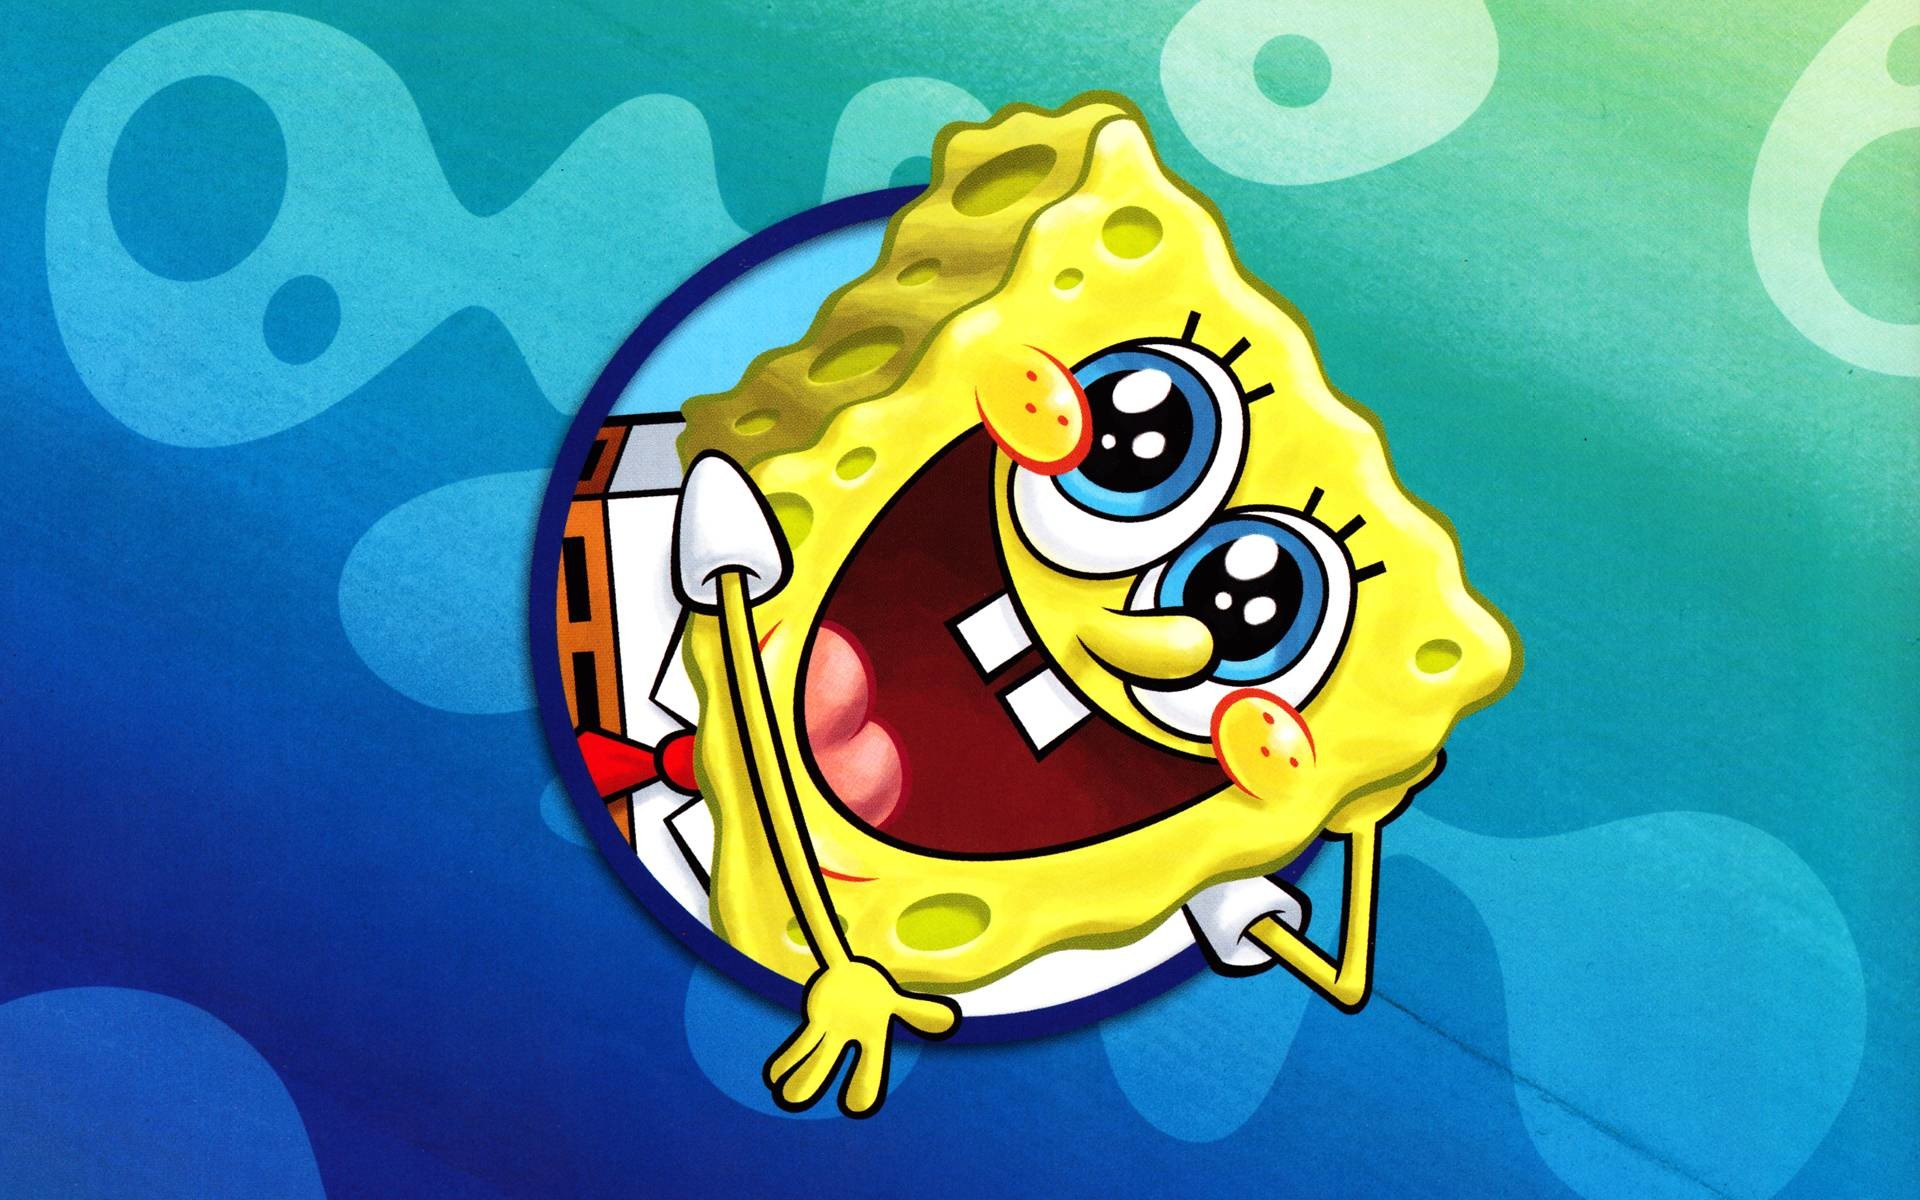 1920x1200 Spongebob Squarepants Wallpaper Hd 1080p Wallpapers - Free .